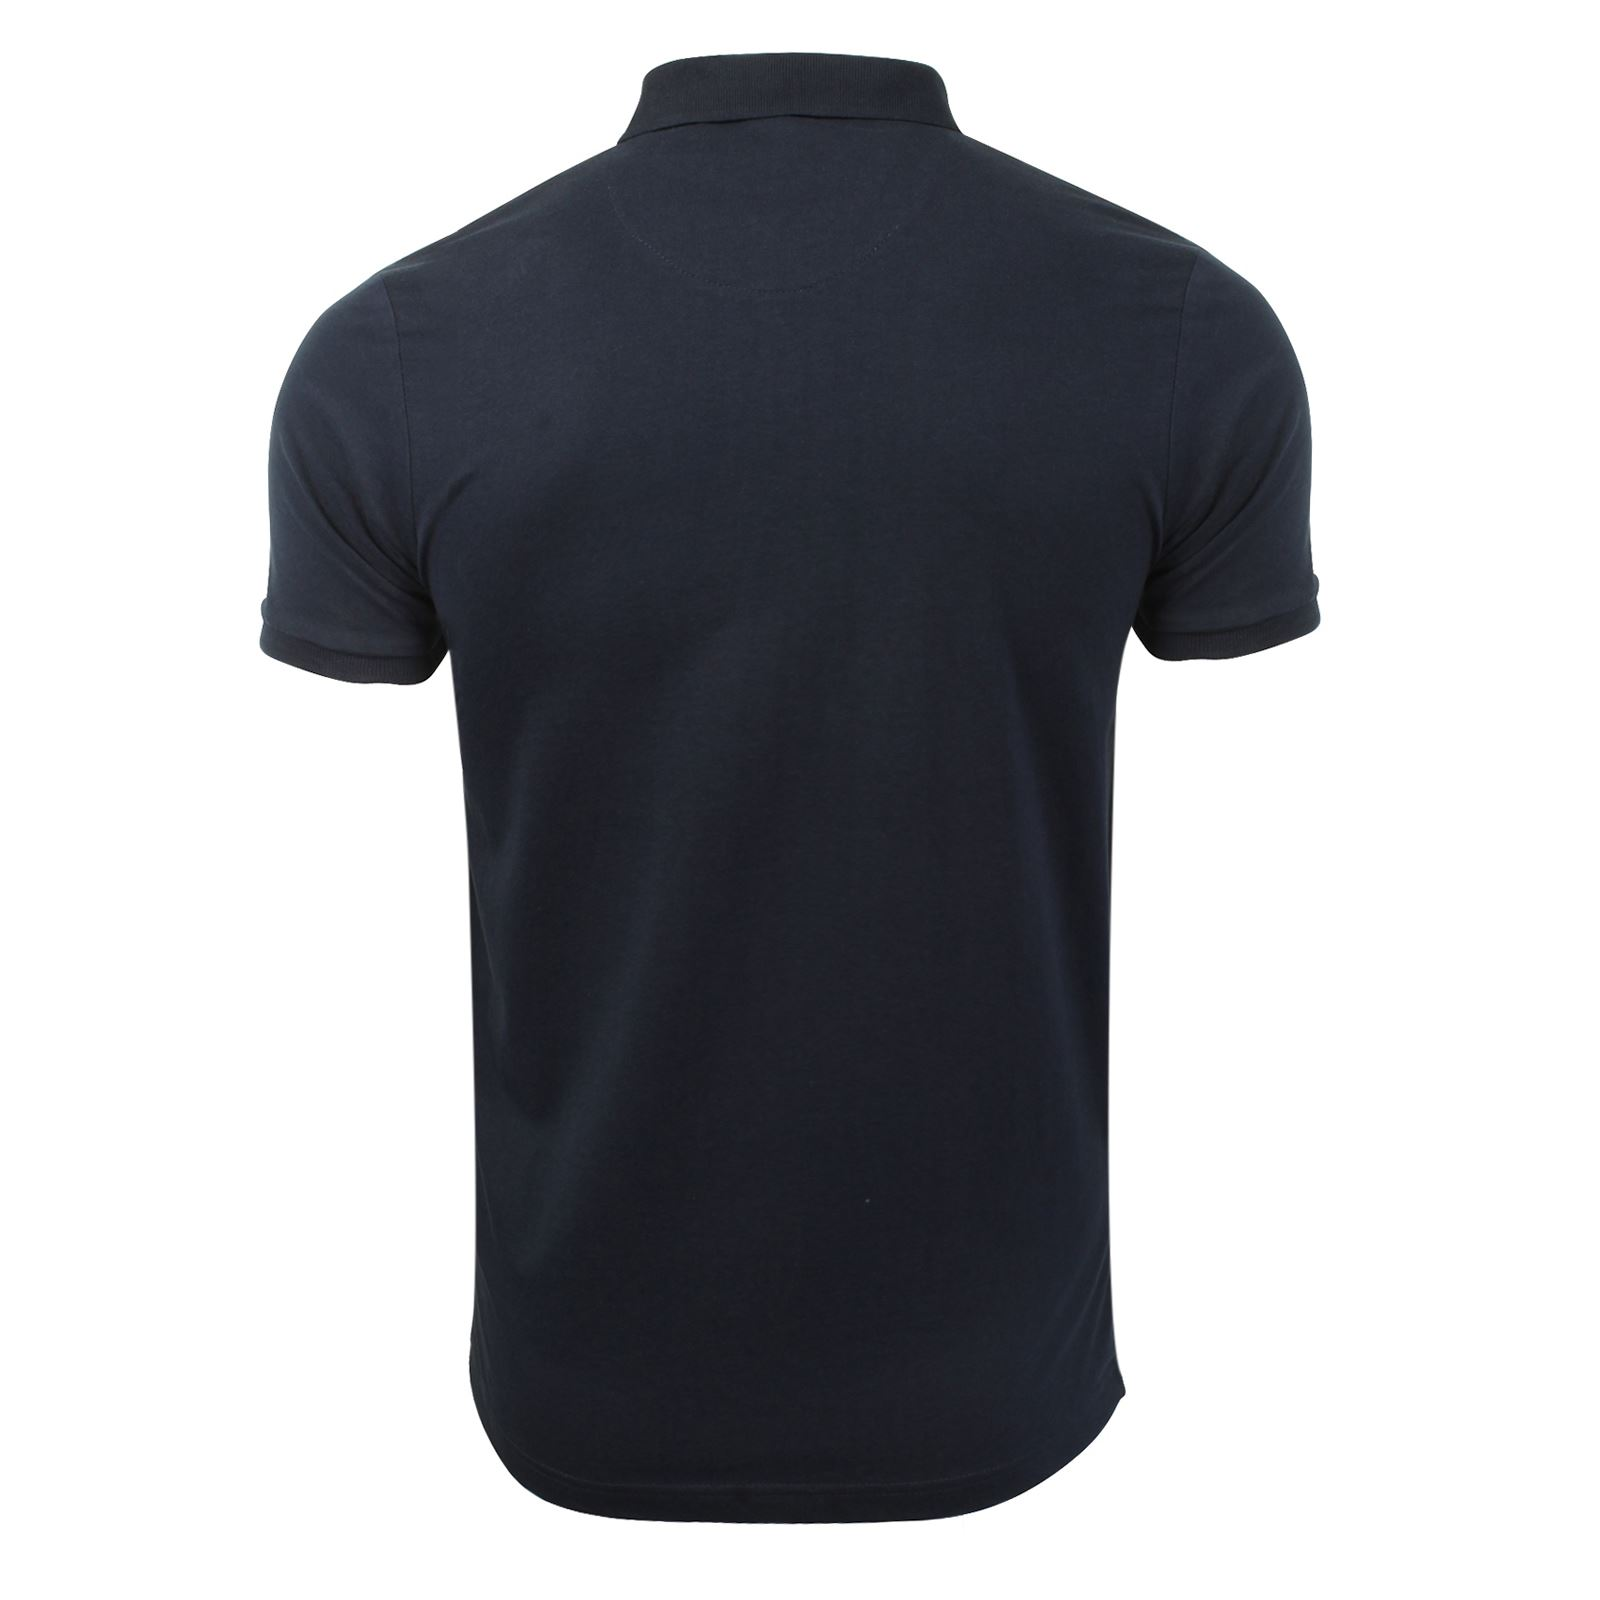 Mens-Polo-T-Shirt-Brave-Soul-Glover-Cotton-Collared-Short-Sleeve-Casual-Top thumbnail 70